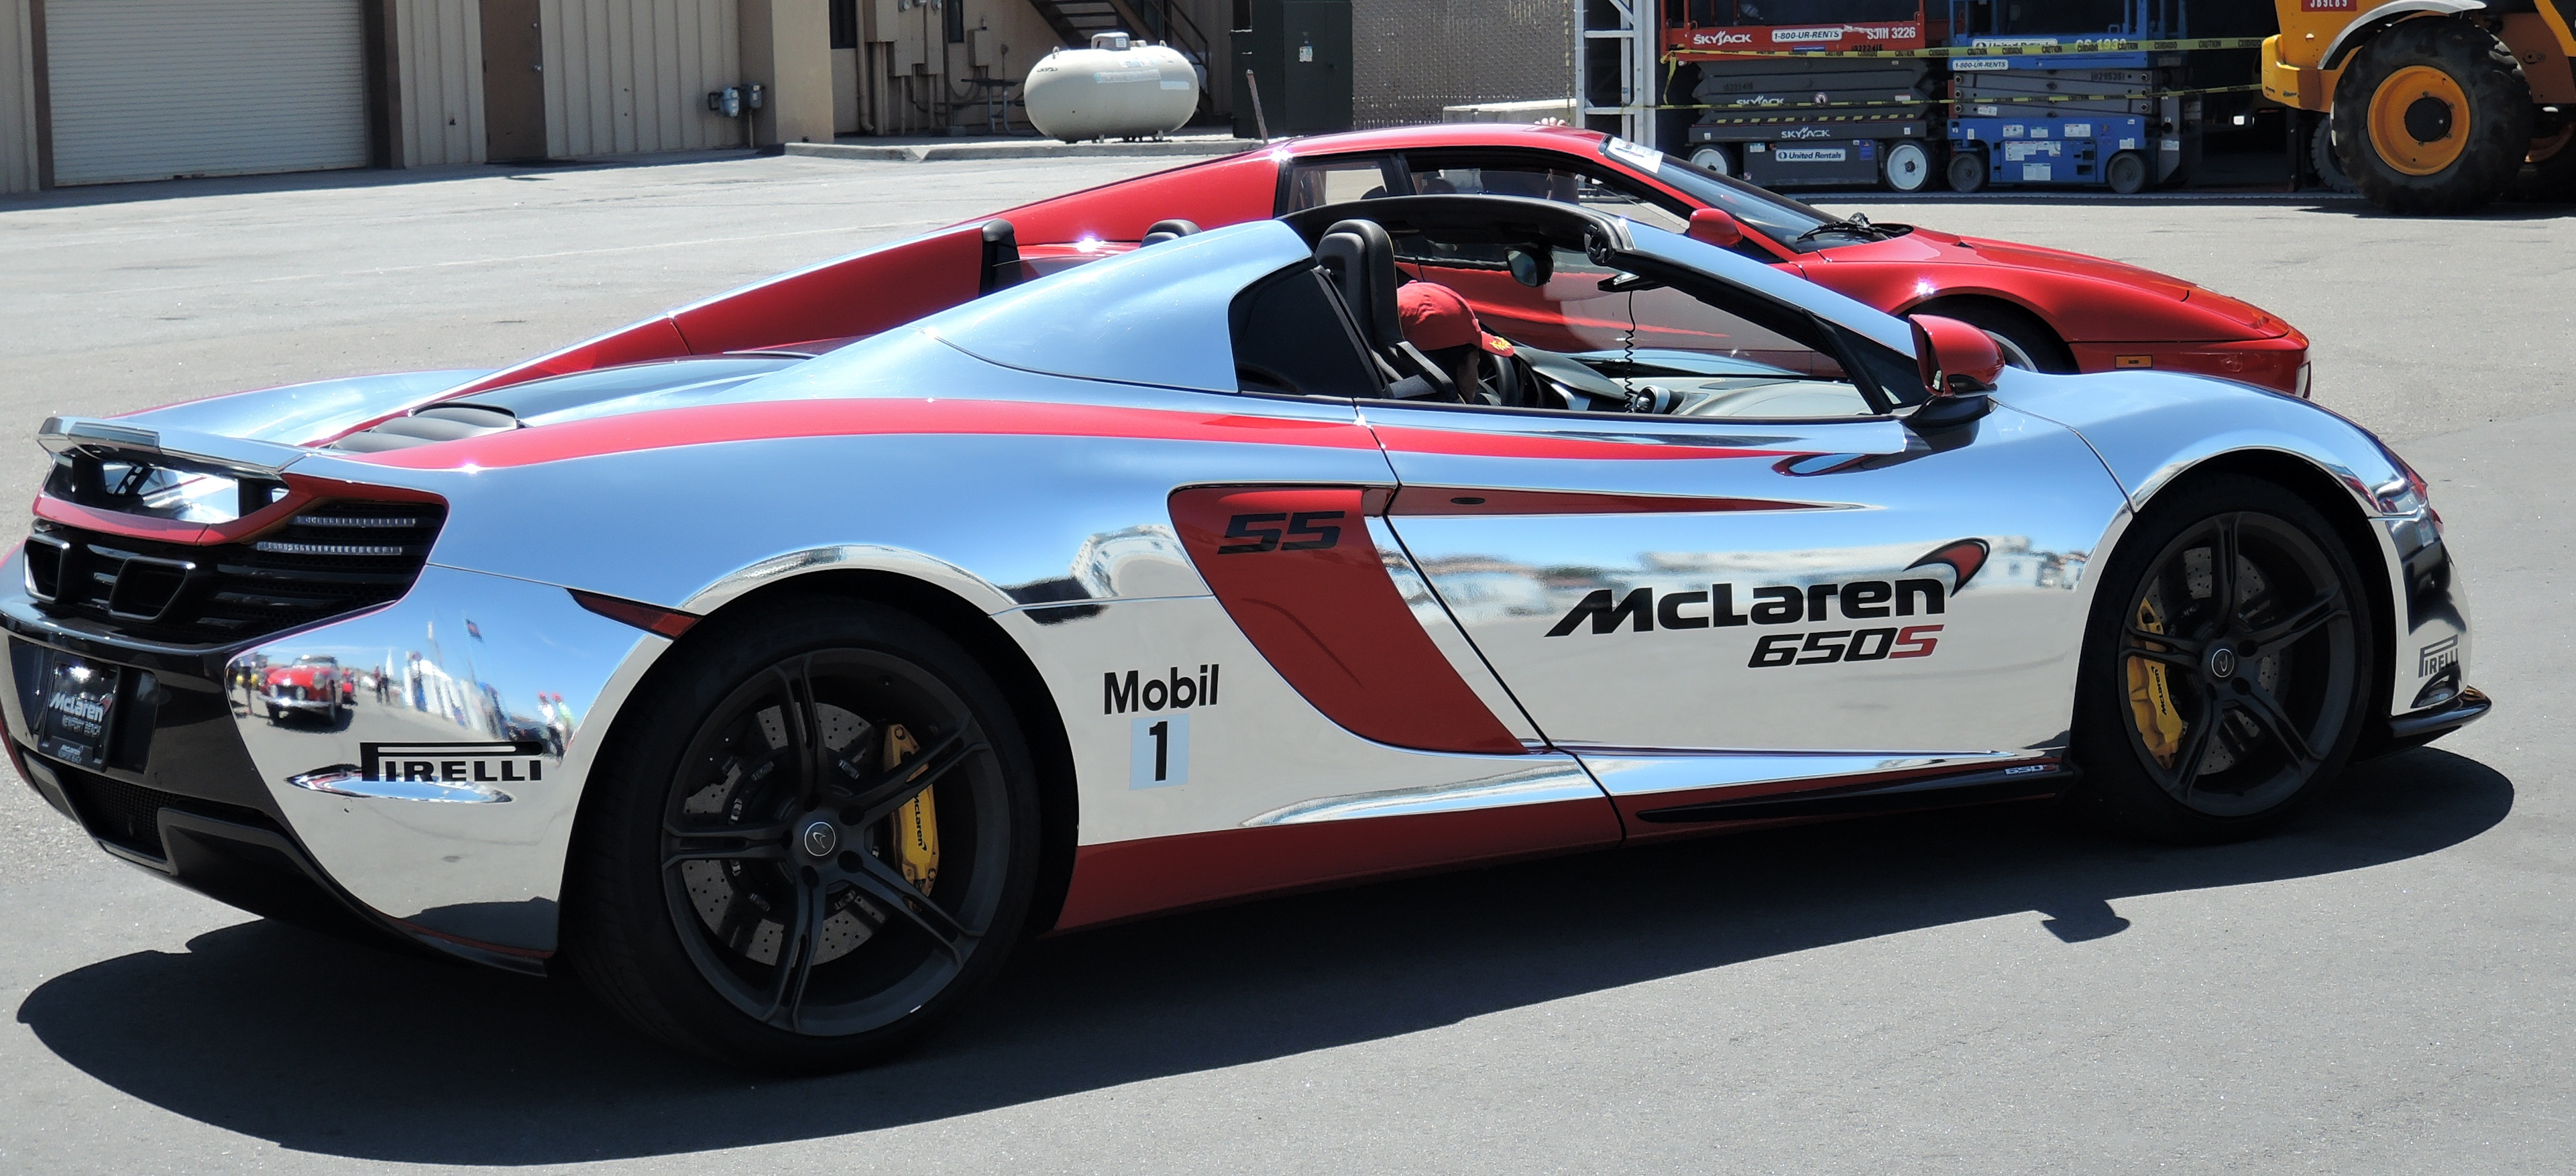 mirrored A McLaren 650S - ferraric club at laguna seca